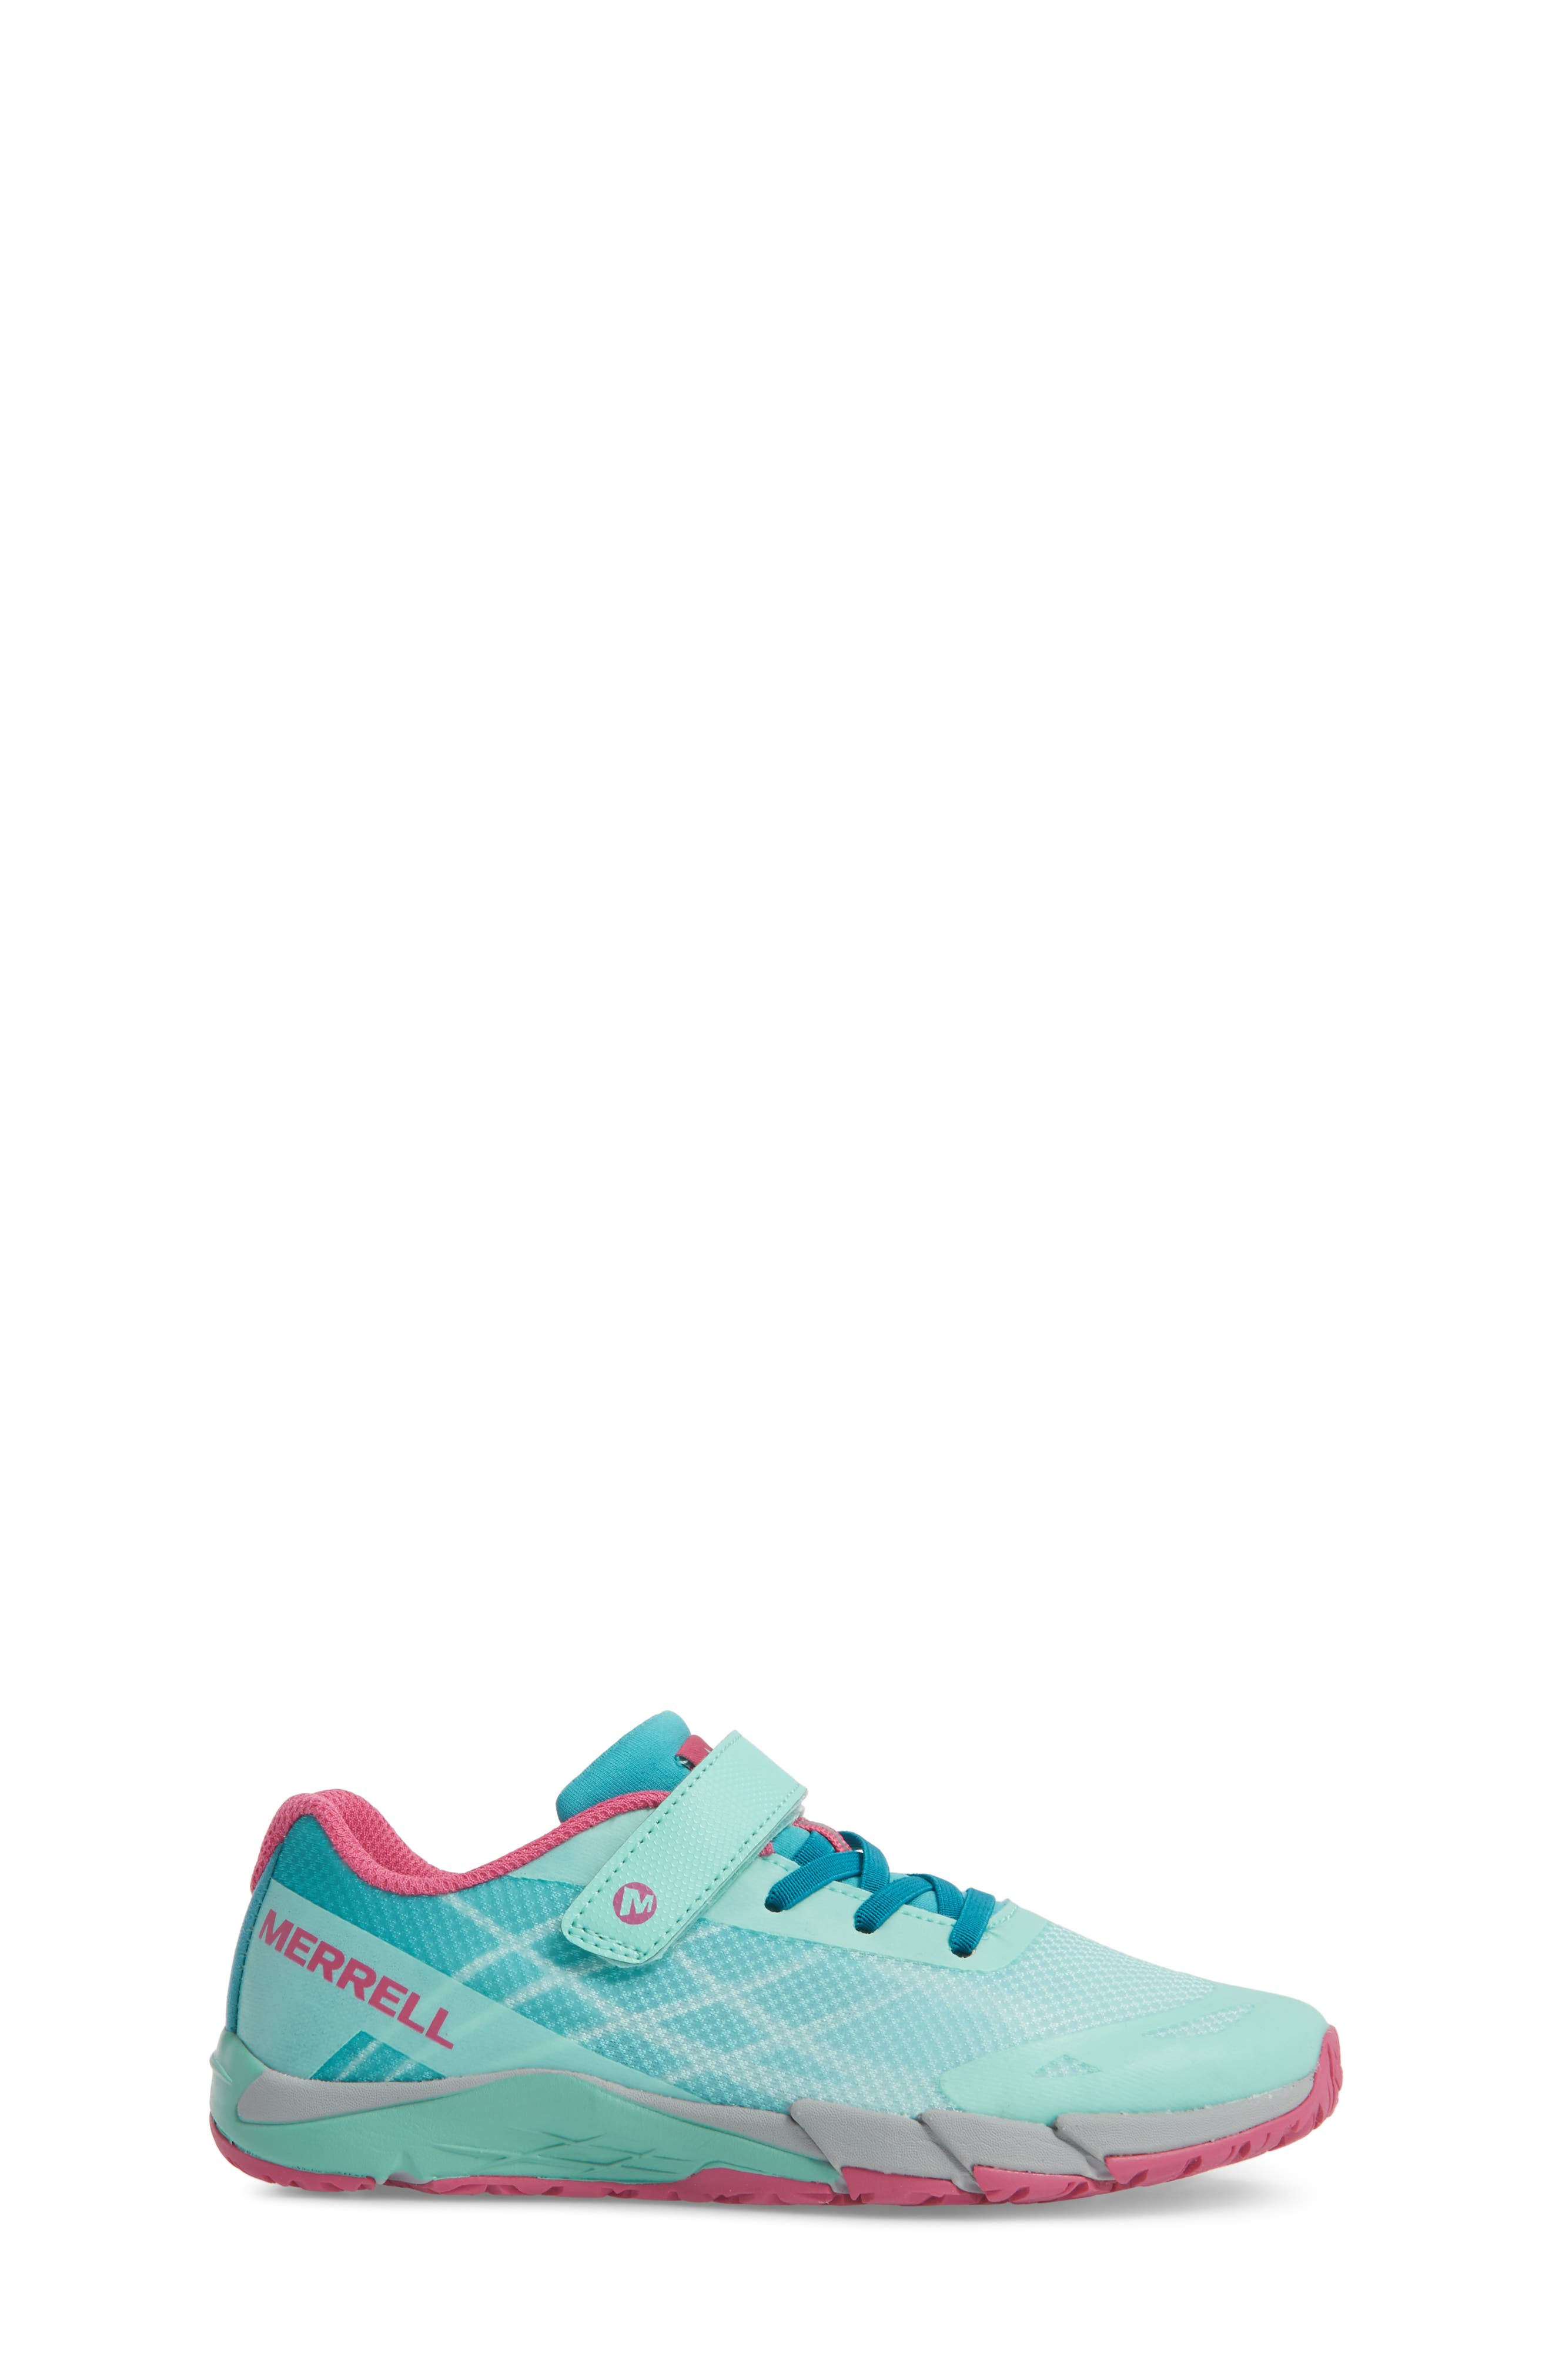 Bare Access Sneaker,                             Alternate thumbnail 3, color,                             Turquoise/ Berry